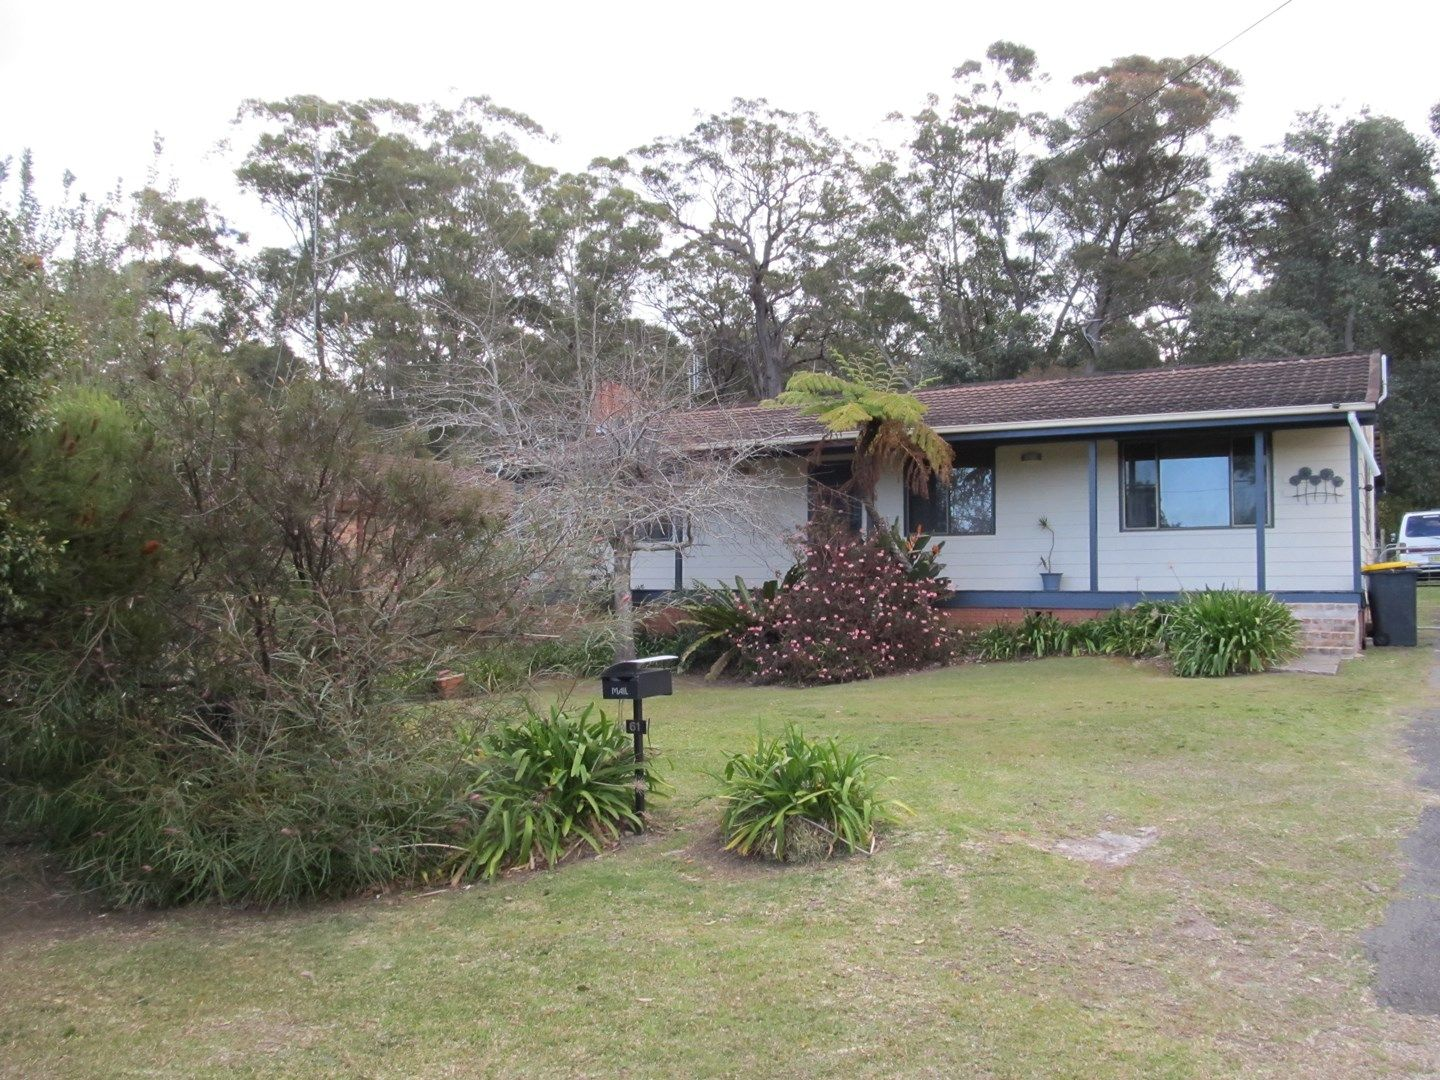 61 Suncrest Ave, Sussex Inlet NSW 2540, Image 0